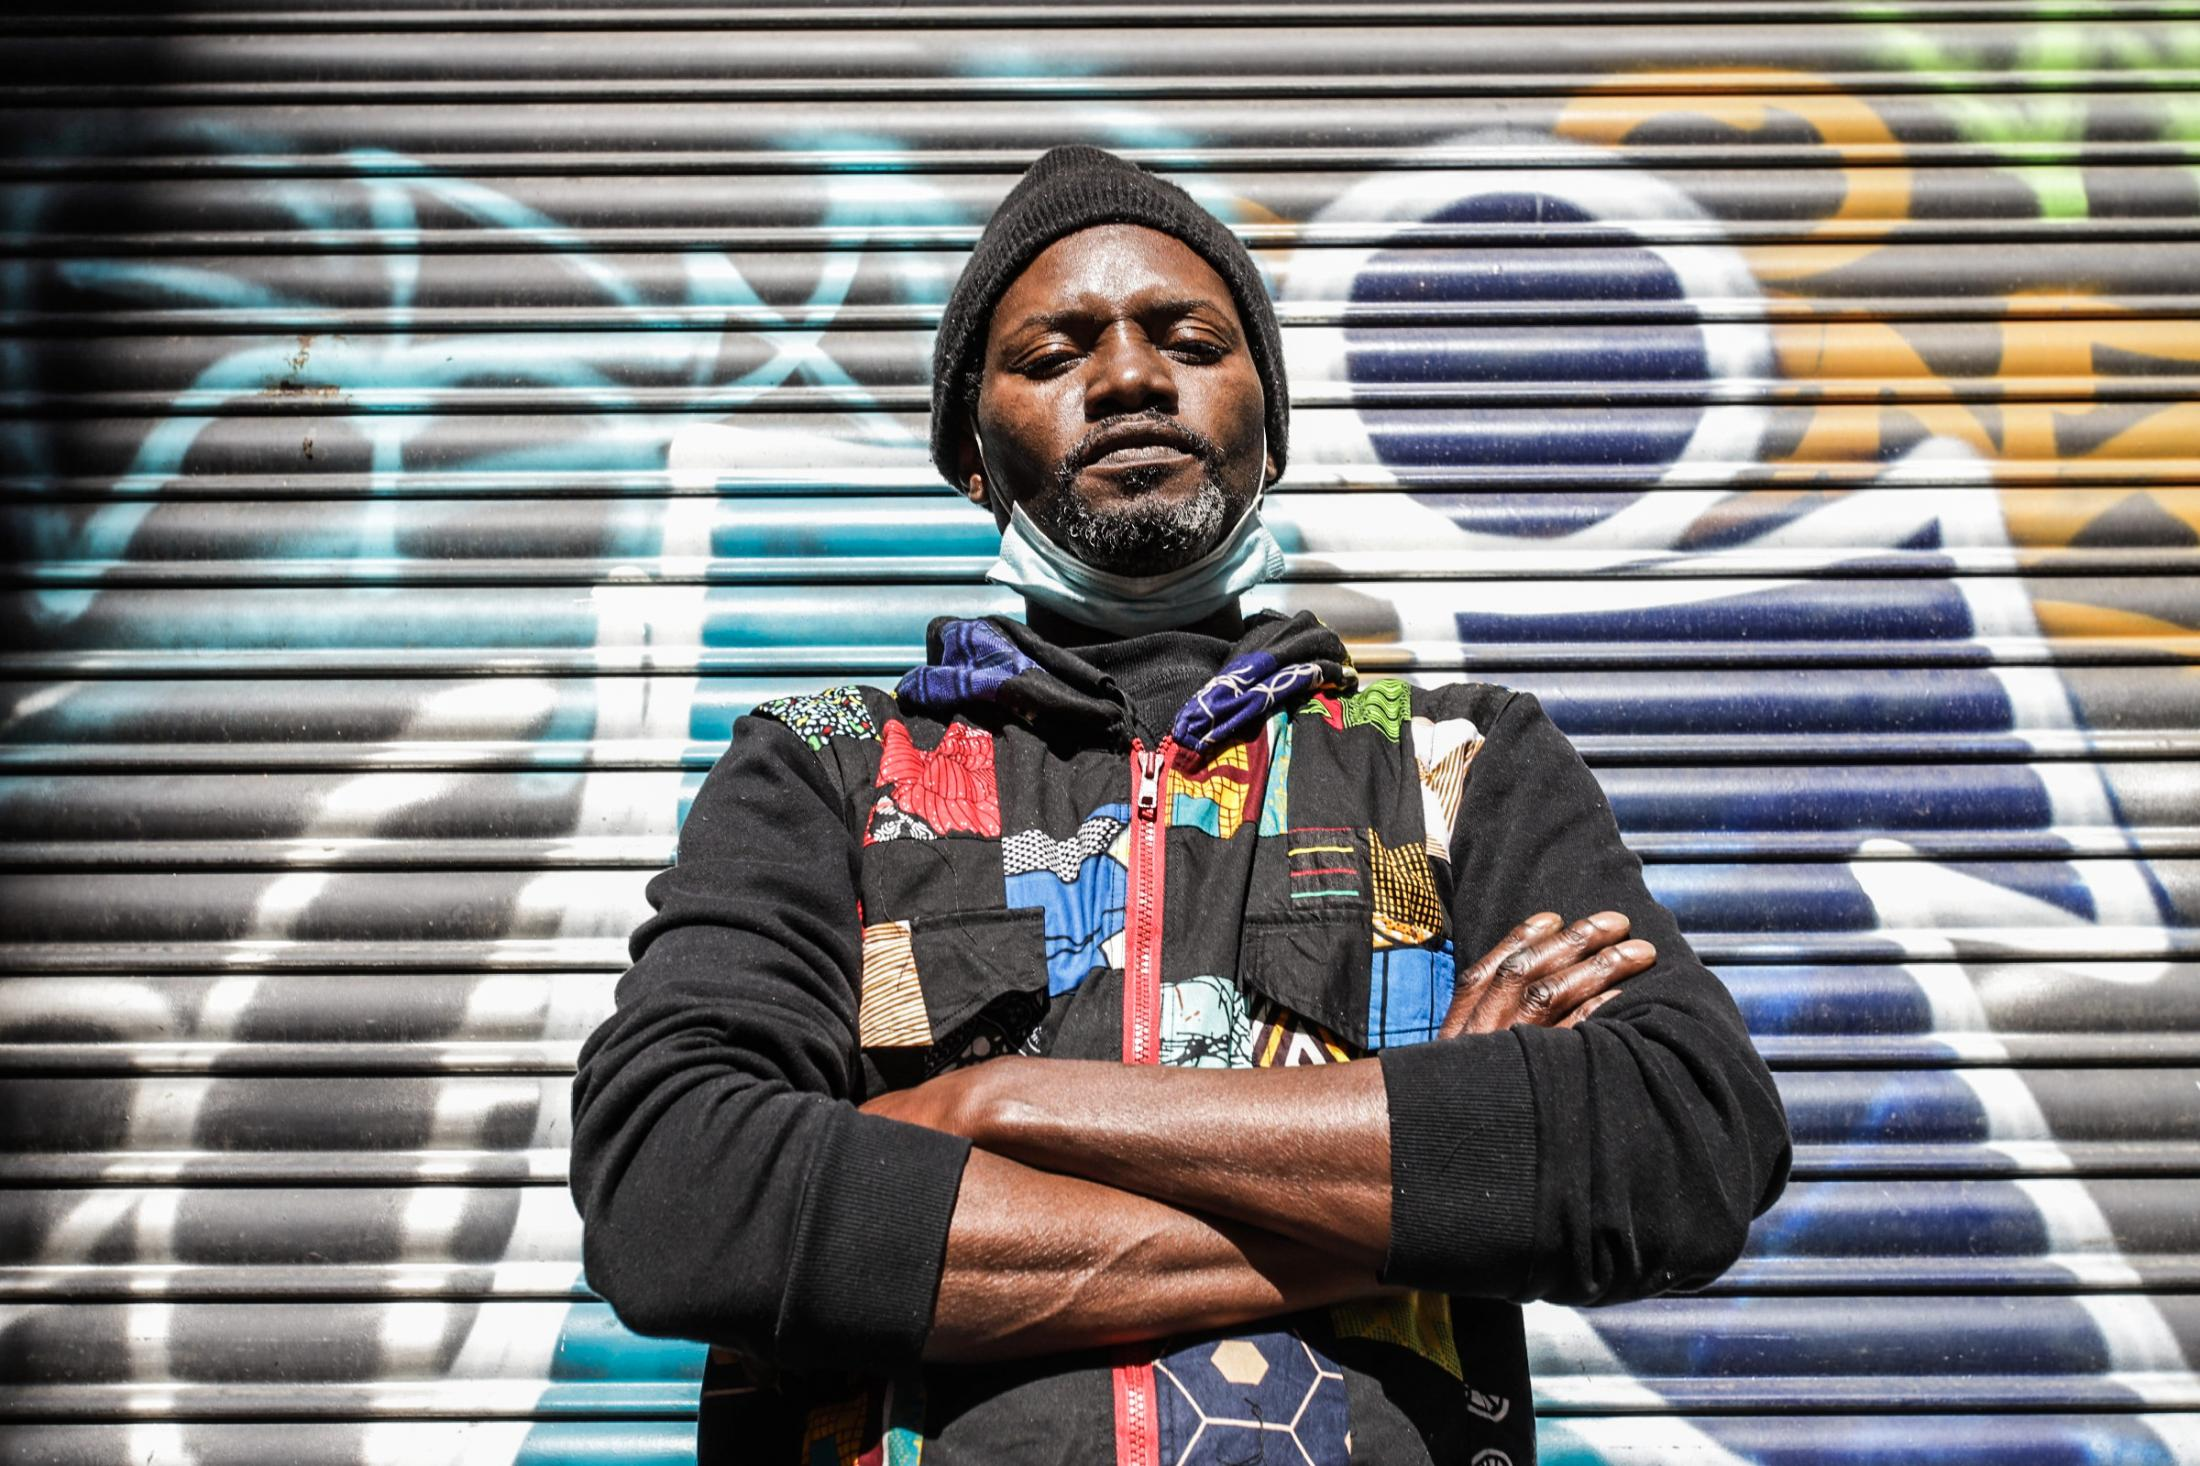 Cheik, 40, from Senegal. Living in Spain since 2000. M any social measures have come out, but the institutions have not talked about helping people selling on the street.